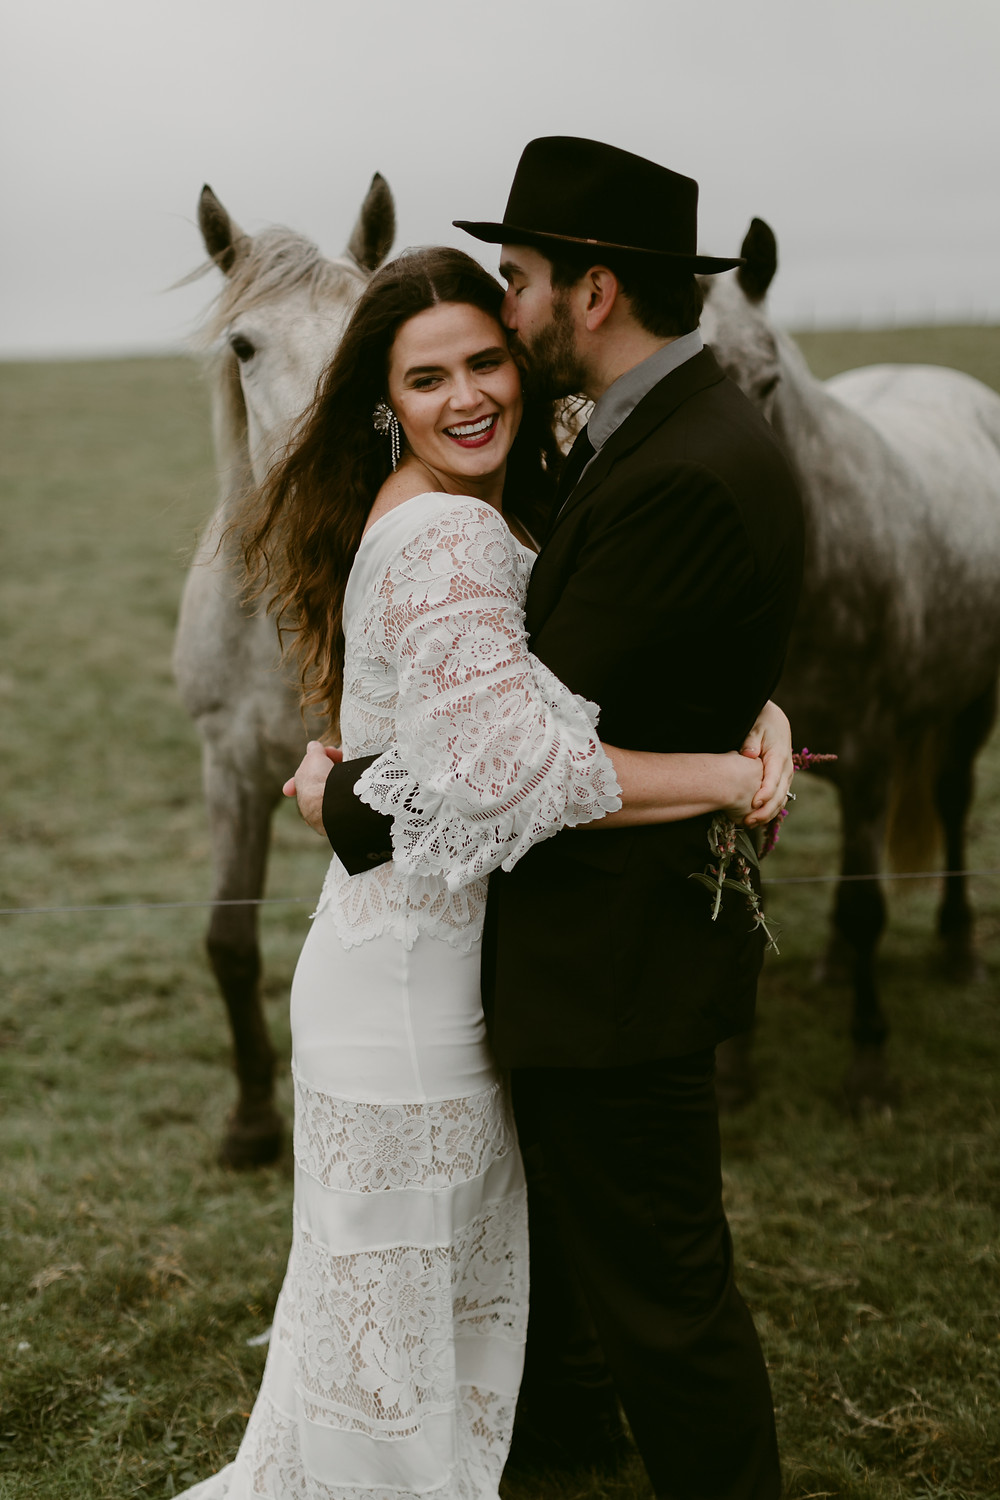 Destination Pre wedding Photoshoot: Couple in embrace with horse in backaground